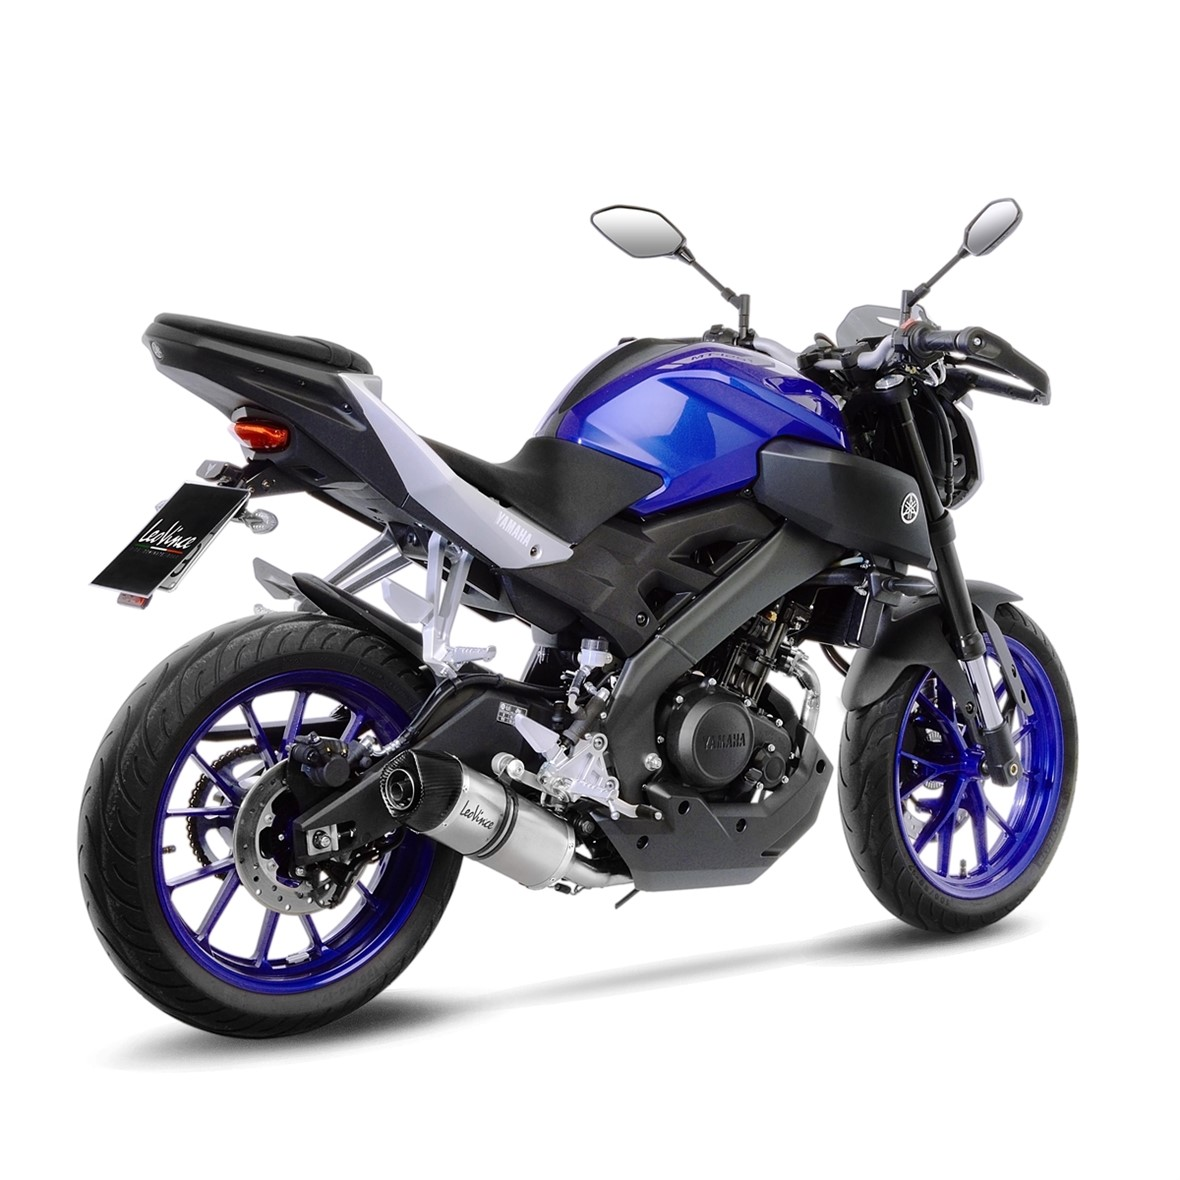 yamaha mt 125 yzf r125 leovince lv one evo exhaust system. Black Bedroom Furniture Sets. Home Design Ideas